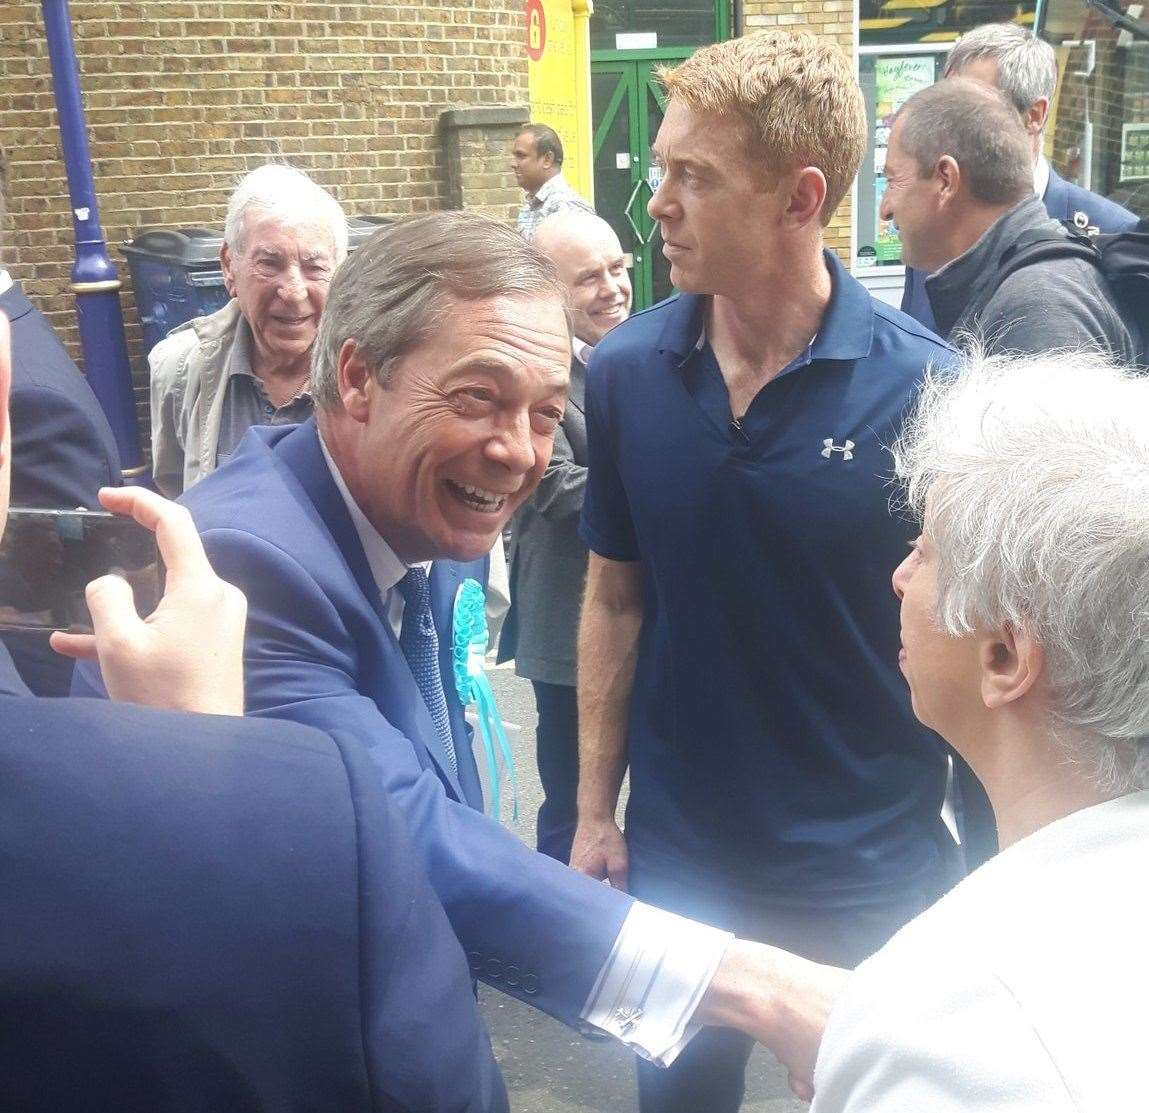 Nigel Farage meeting supporters in Dartford